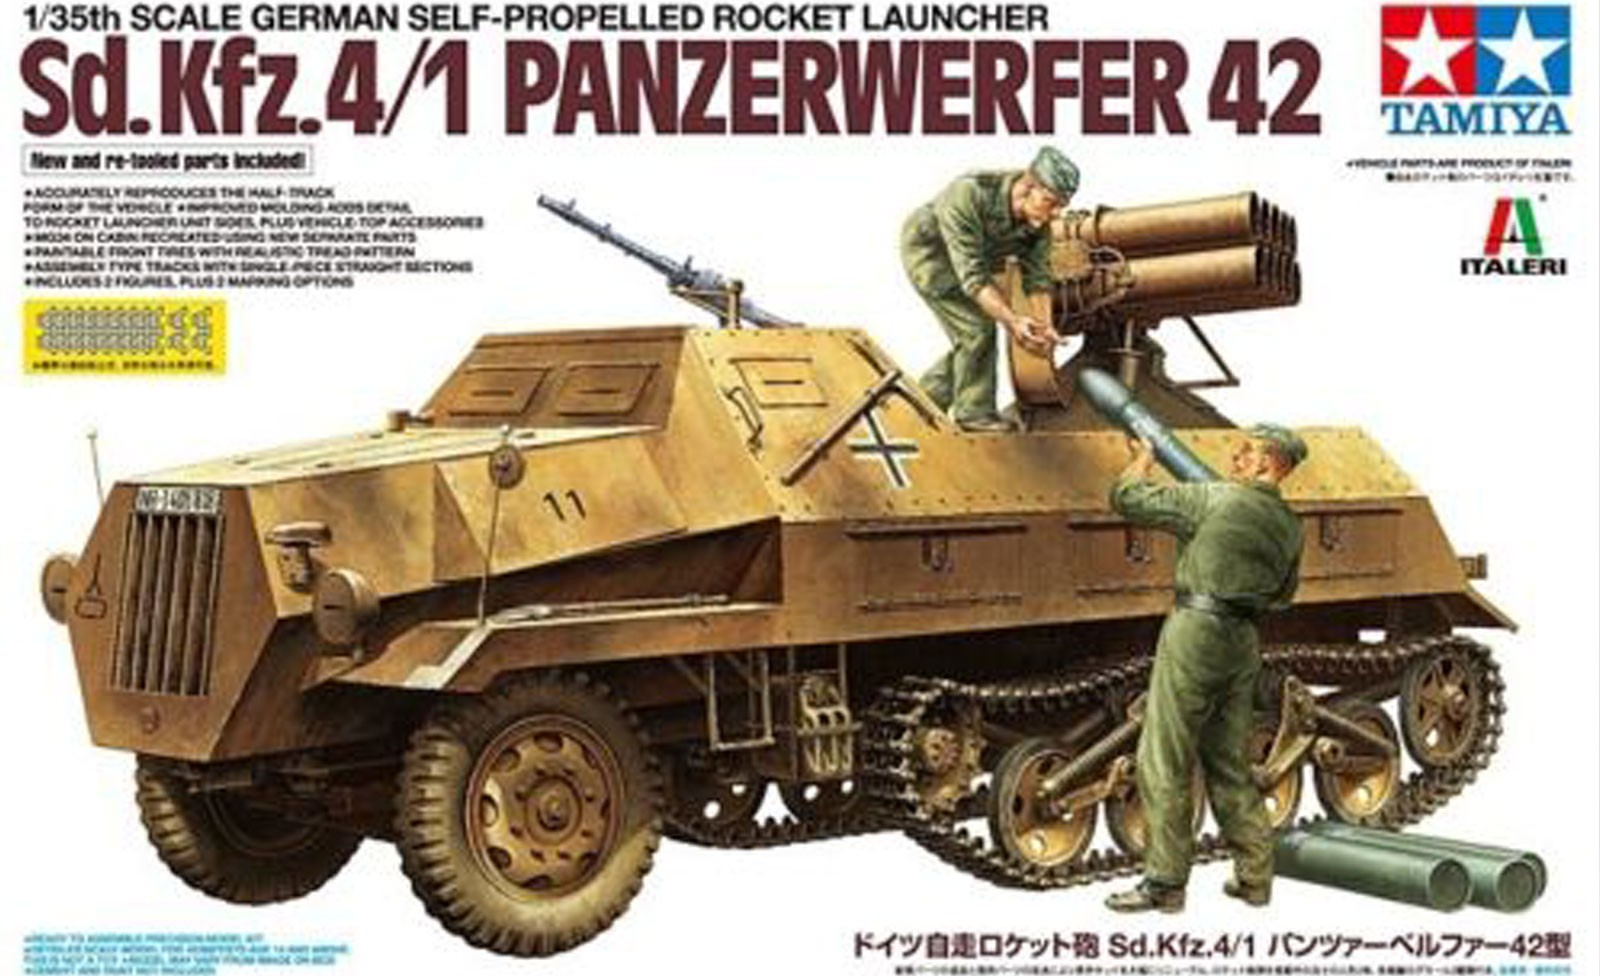 German Self-Propelled Rocket Launcher - Sd.Kfz.4/1 Panzerwerfer 42 - Tamiya 37017 - plastic model kit - 1/35 scale